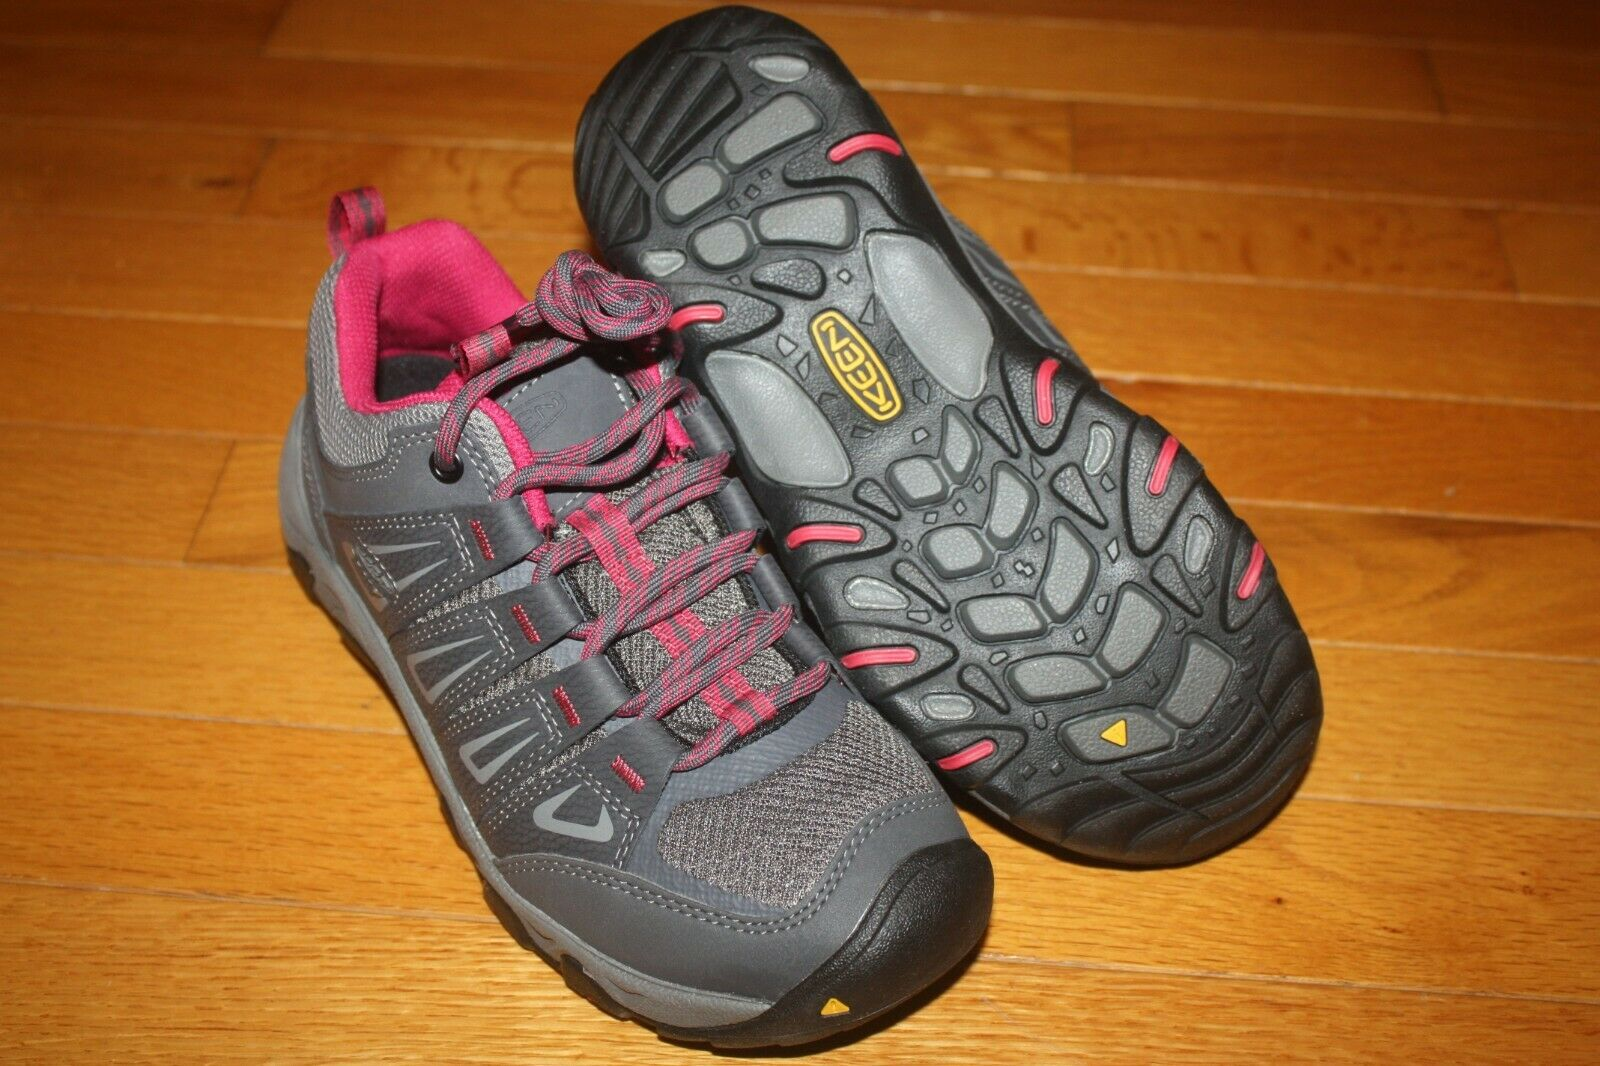 New In Box KEEN Womens Oakridge Waterproof Hiking Shoes 1015364 SHIP FREE US